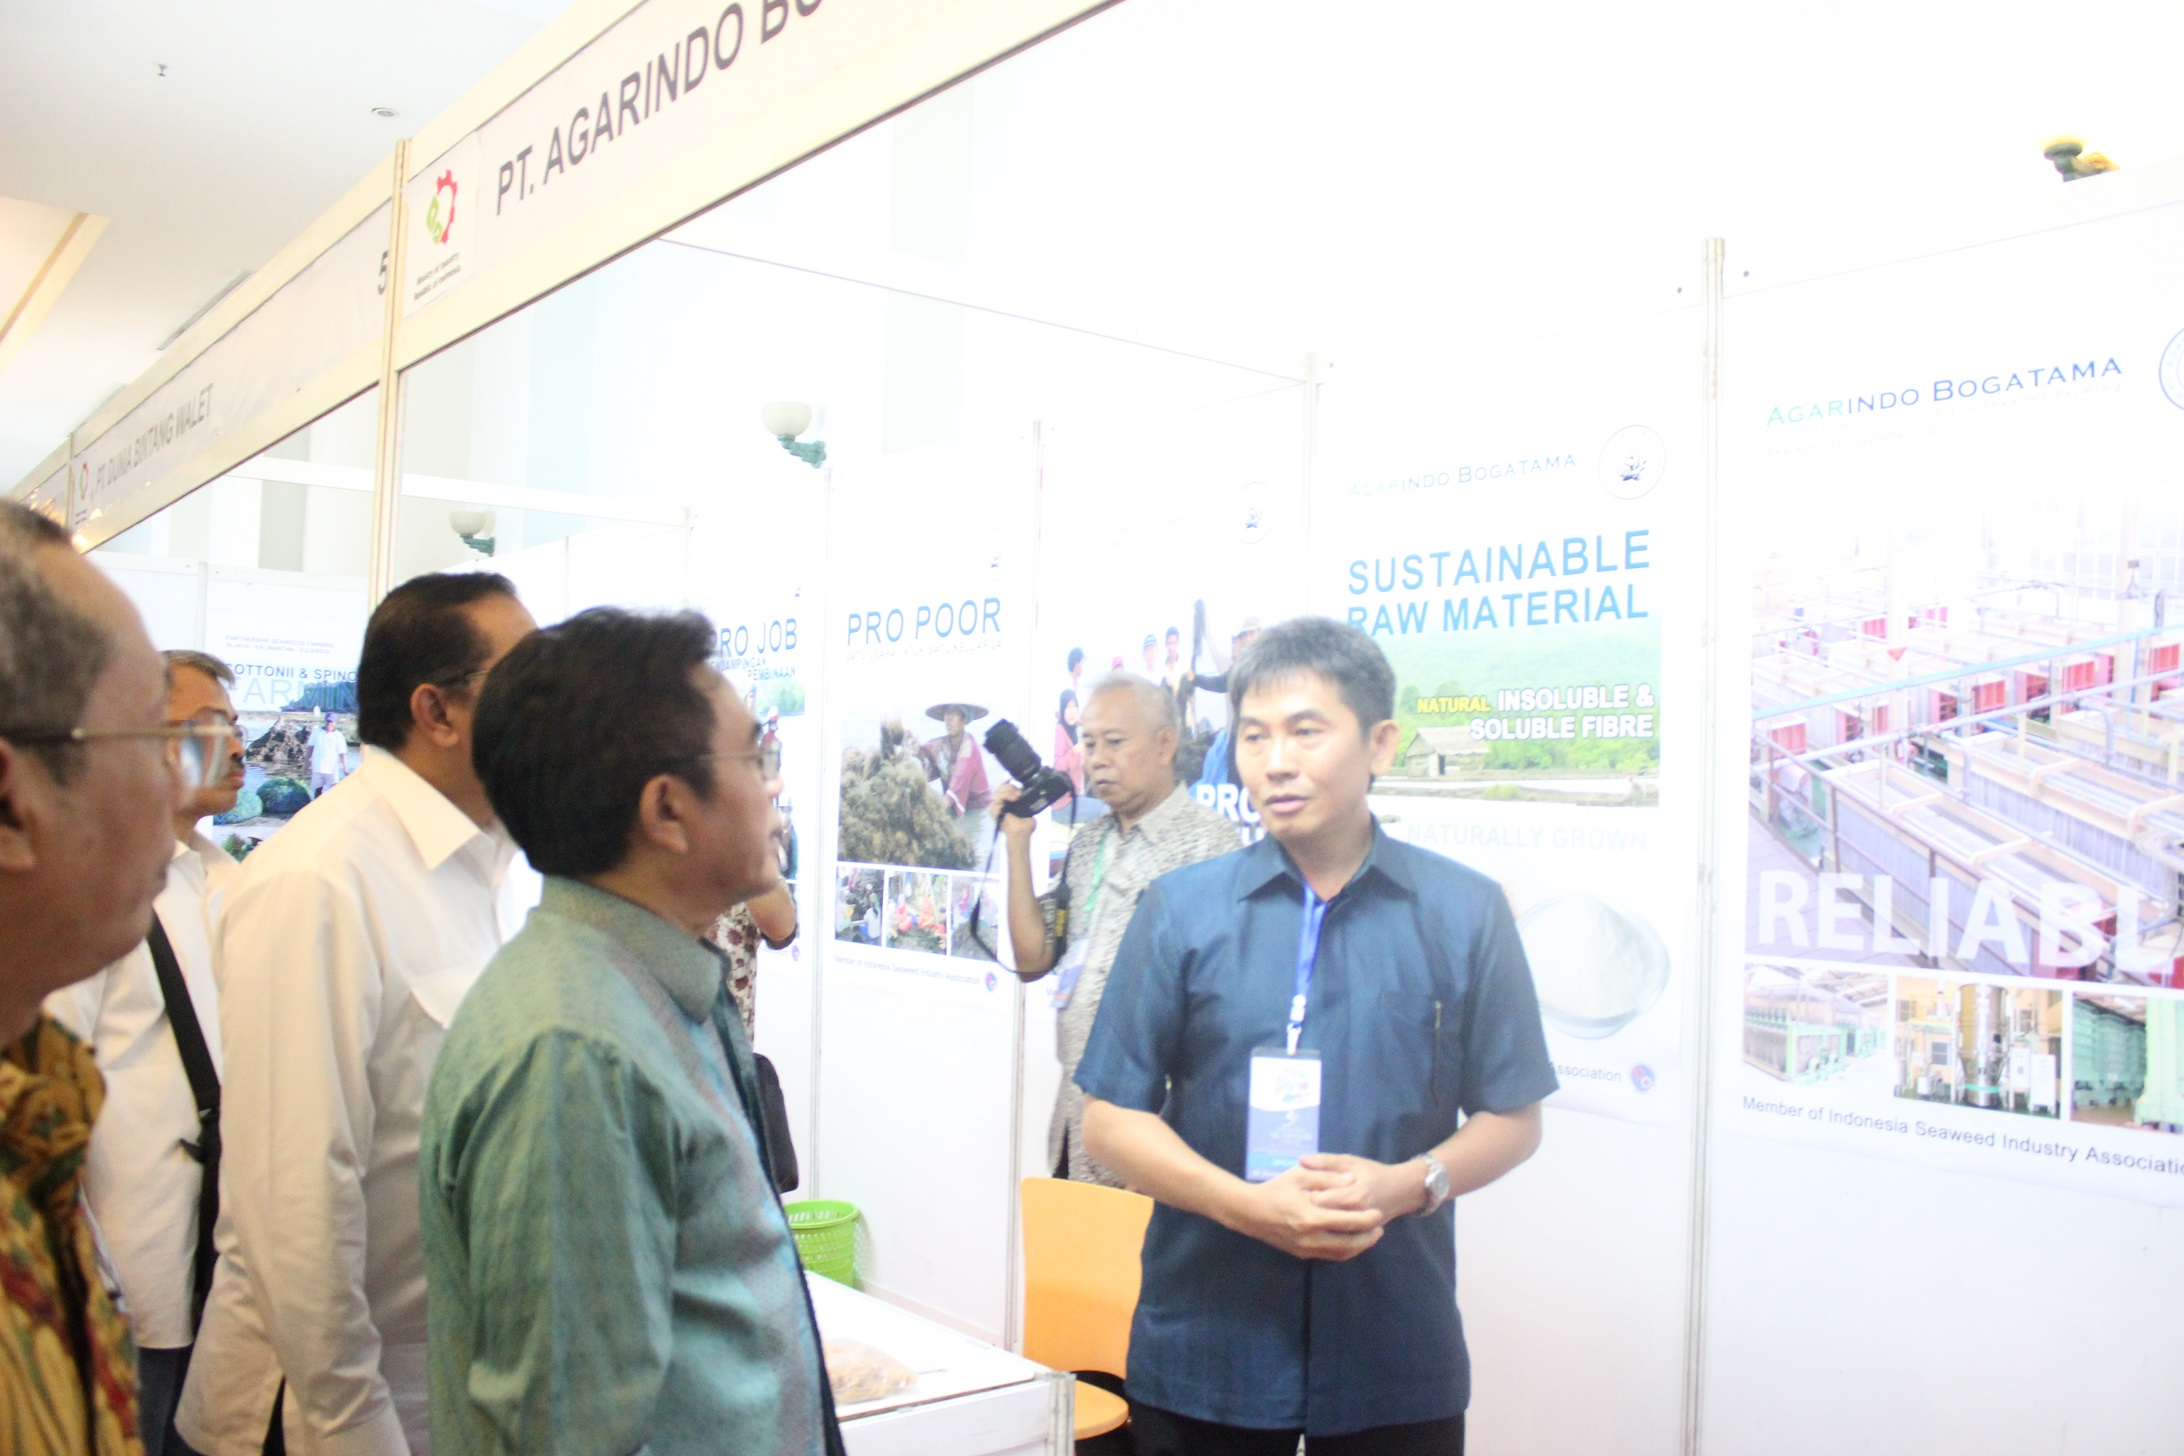 PT Agarindo Bogatama in The 3rd Indonesia Seaweed Forum (ISF 3)